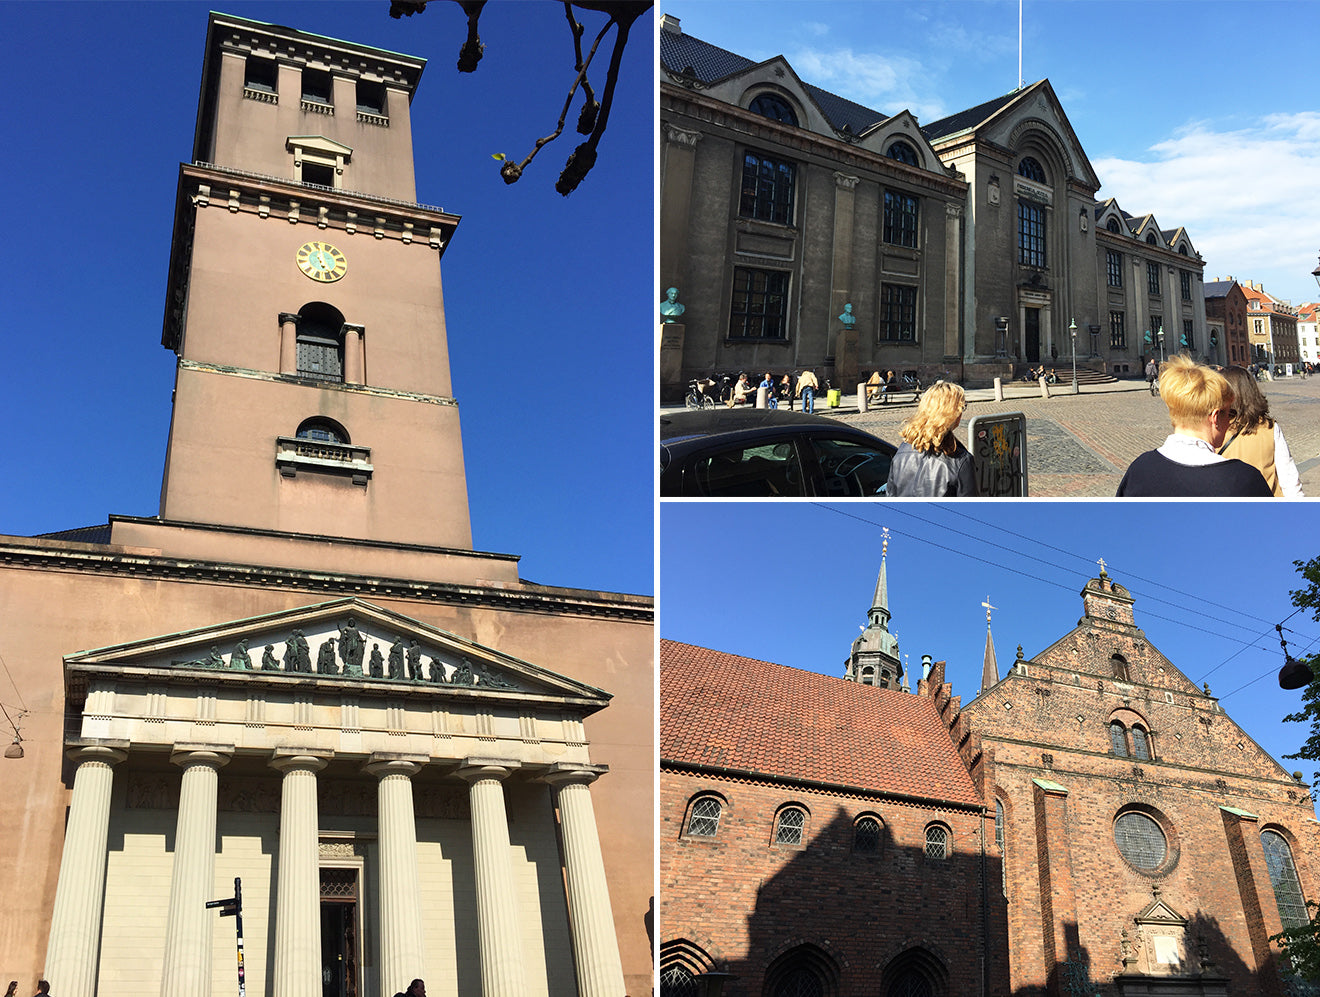 Traditional architecture in Copenhagen church and university buildings